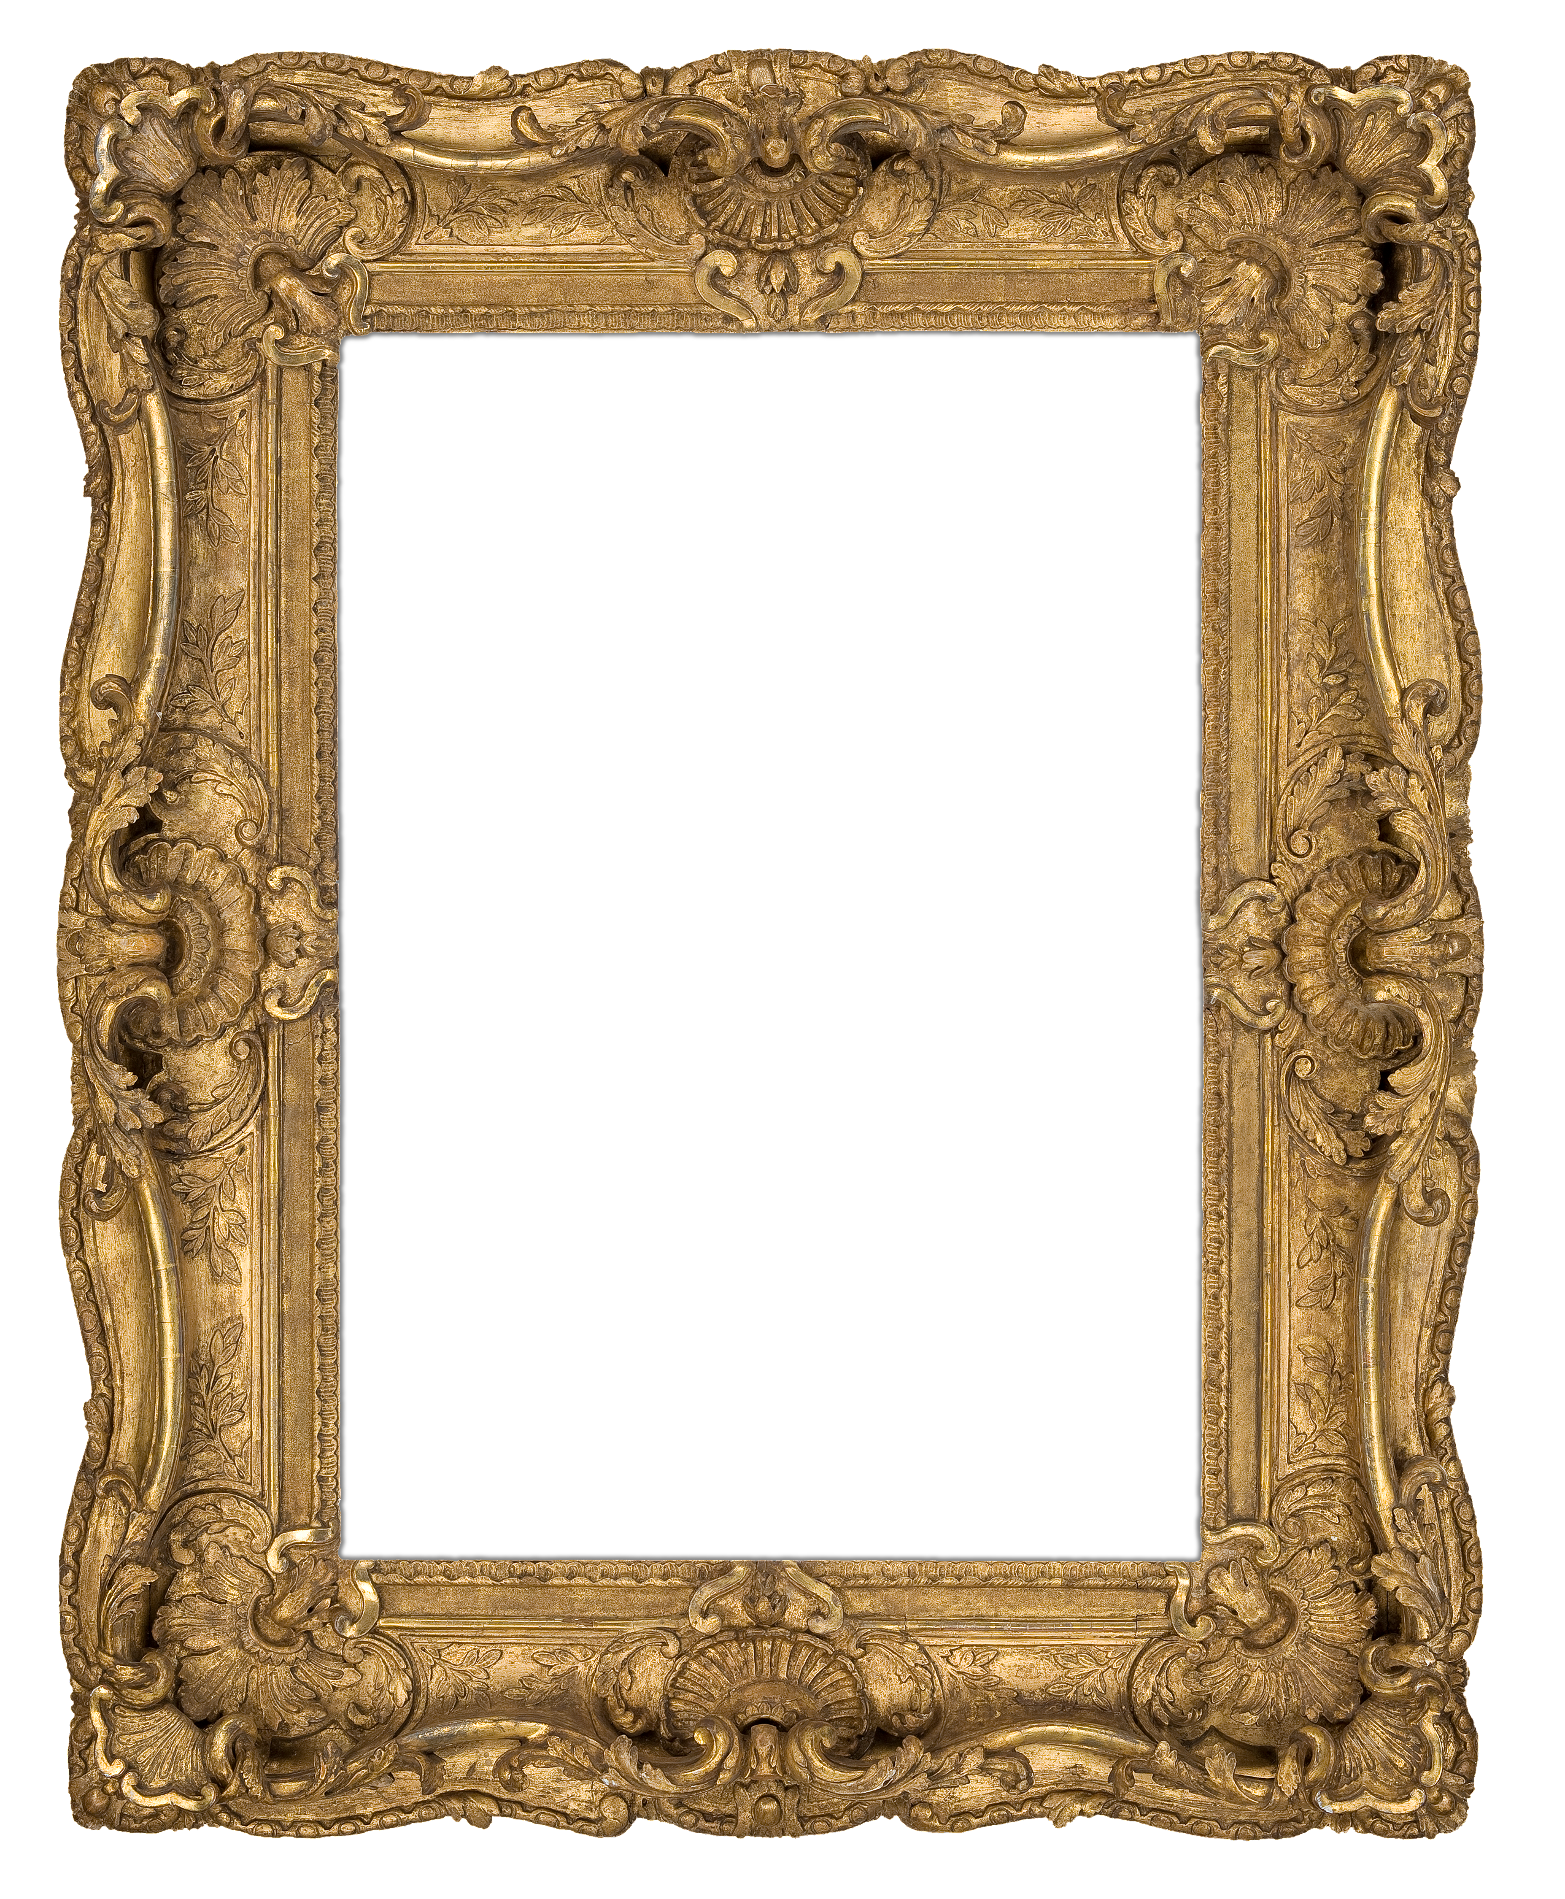 Featured frame of the week for Rococo style frame